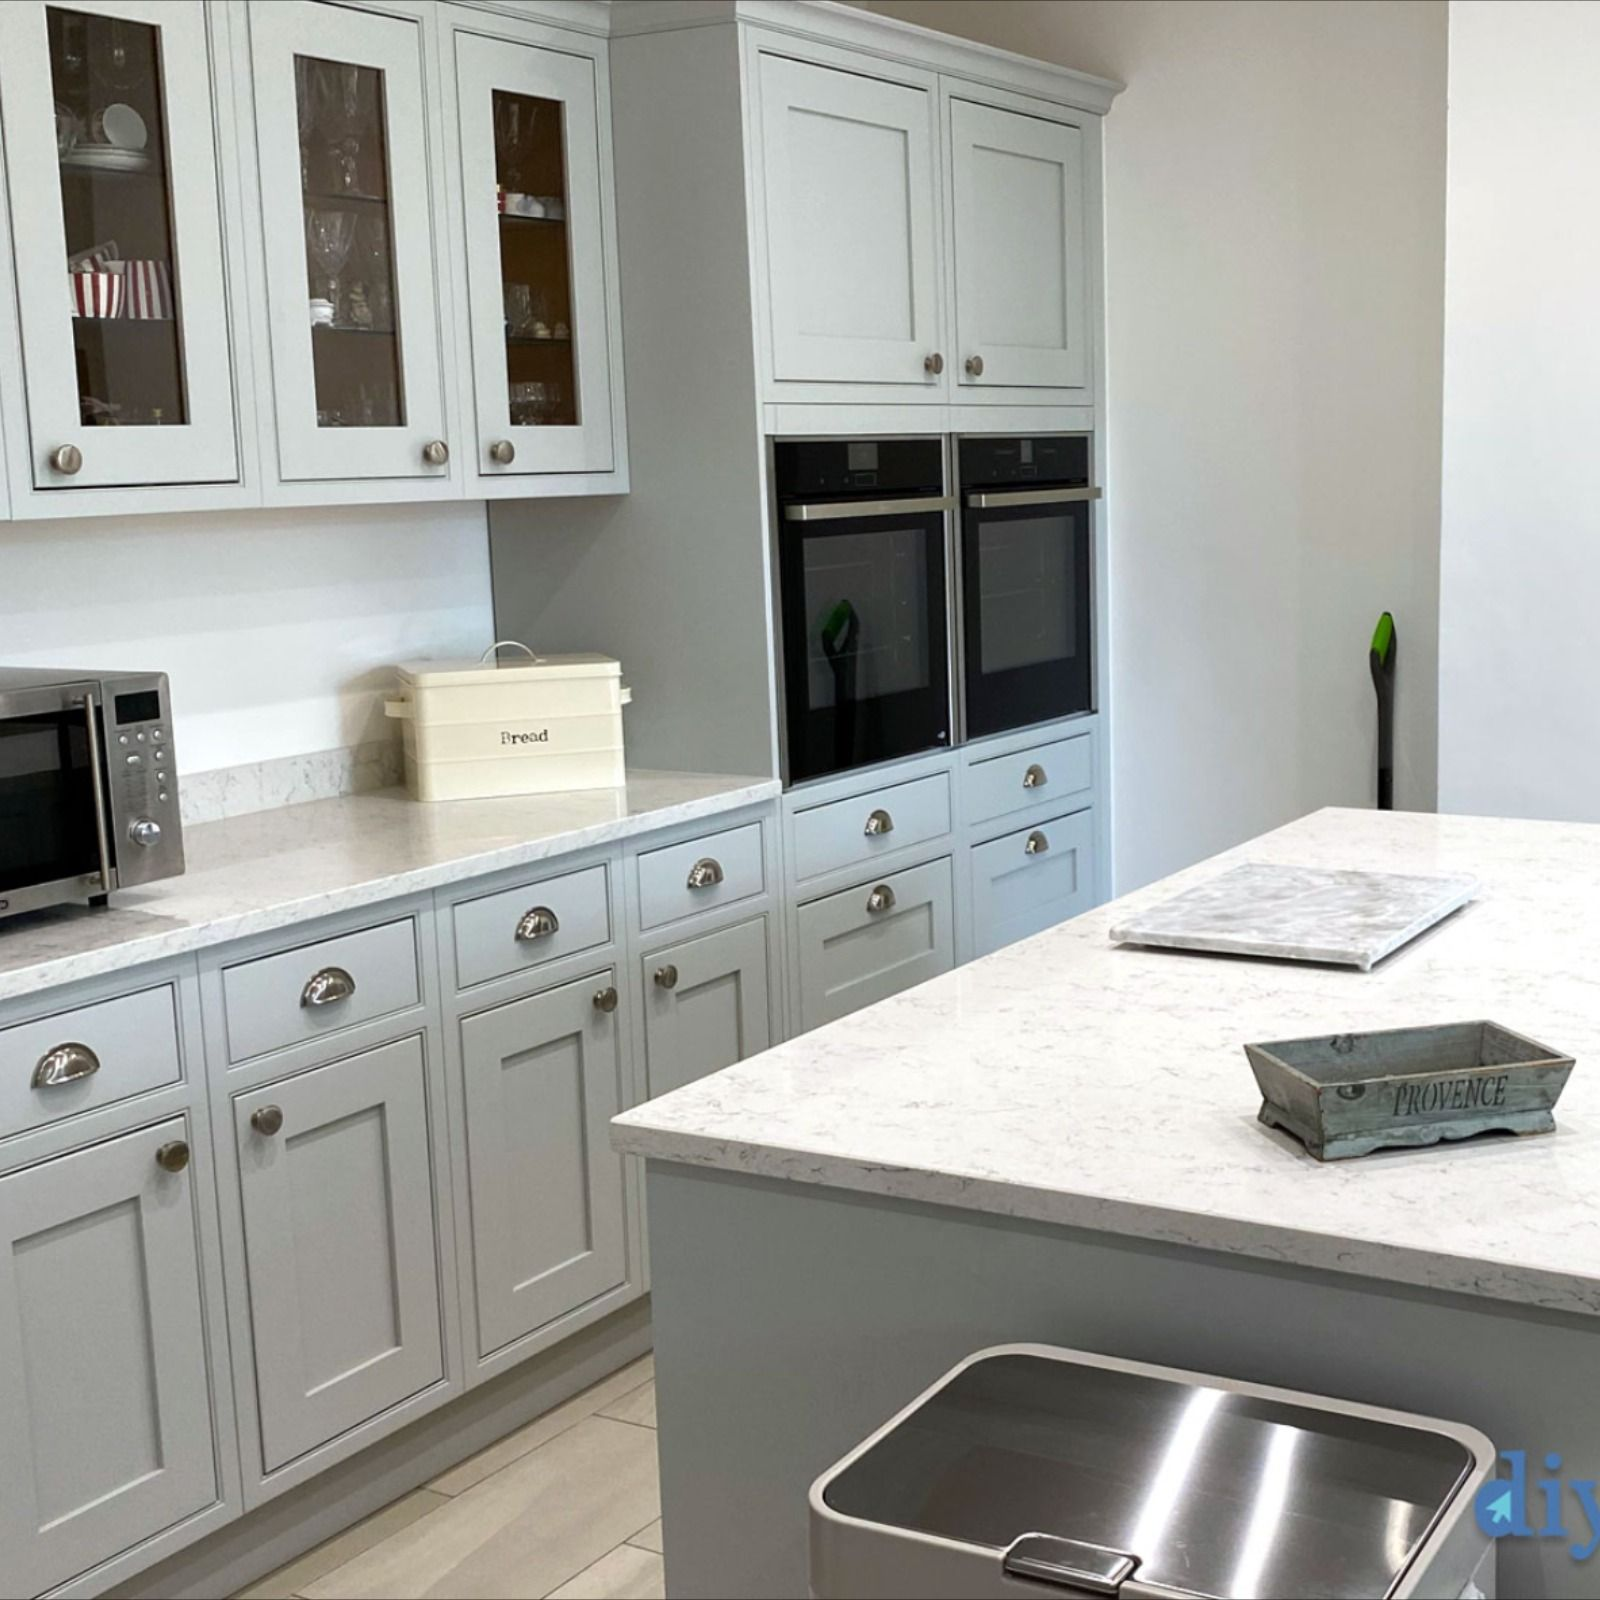 Best An Innova Helmsley Dove Grey Kitchen In 2020 With Images 640 x 480